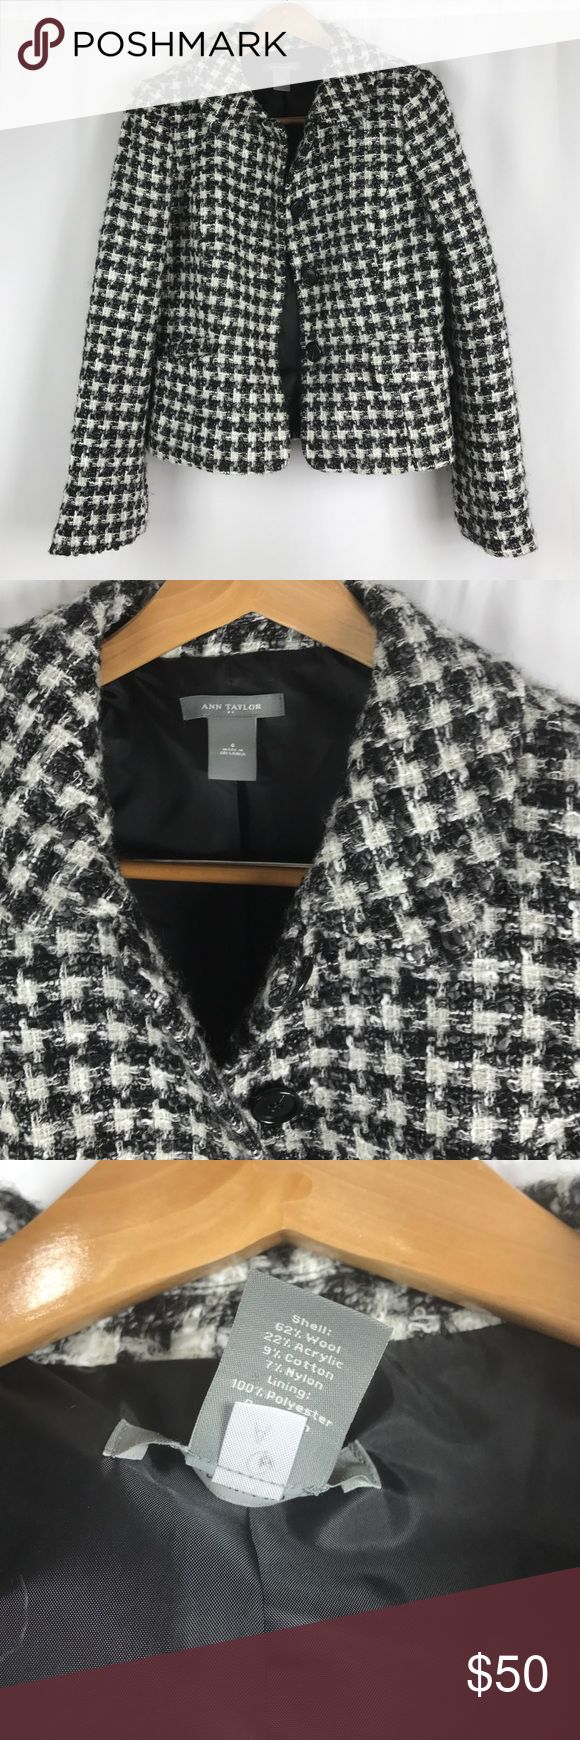 Ann Taylor Houndstooth Dress Coat/ Blazer Like New Condition with no rips, stains or holes. This is a cute and sassy dress Coat/ jacket. Please take advantage of my bundle discounts & feel free to submit reasonable offers through the offers tab. Thanks for shopping my closet!! Ciao, Melissa 💋 Ann Taylor Jackets & Coats Blazers